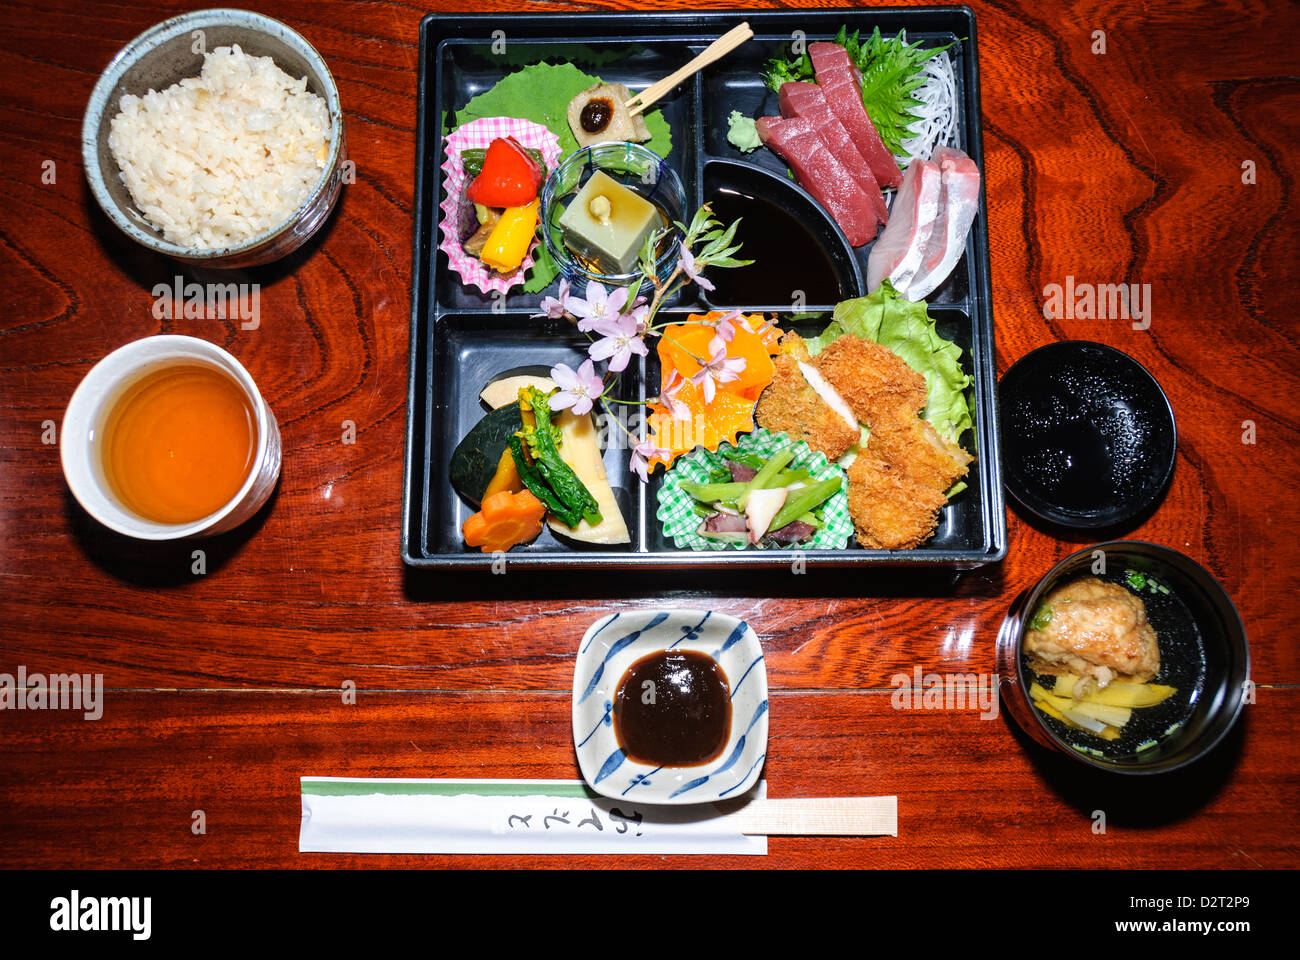 Food in Japan: a traditional Japanese meal, home cooked by the owner of the ryokan. - Stock Image